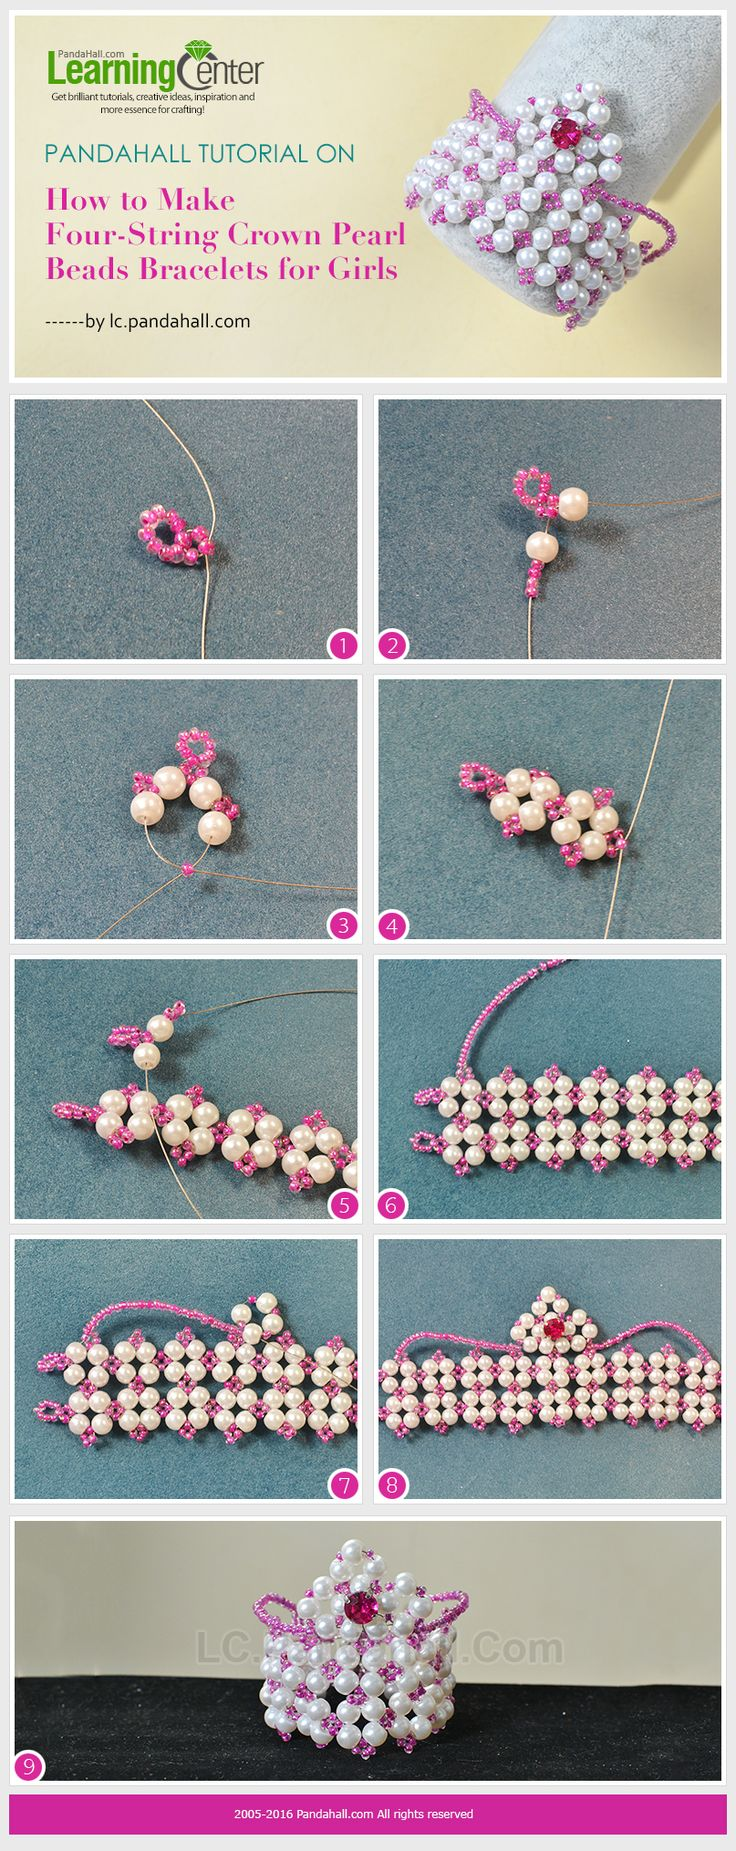 Tutorial on How to Make Four-String Crown Pearl Beads Bracelets for Girls from LC.Pandahall.com